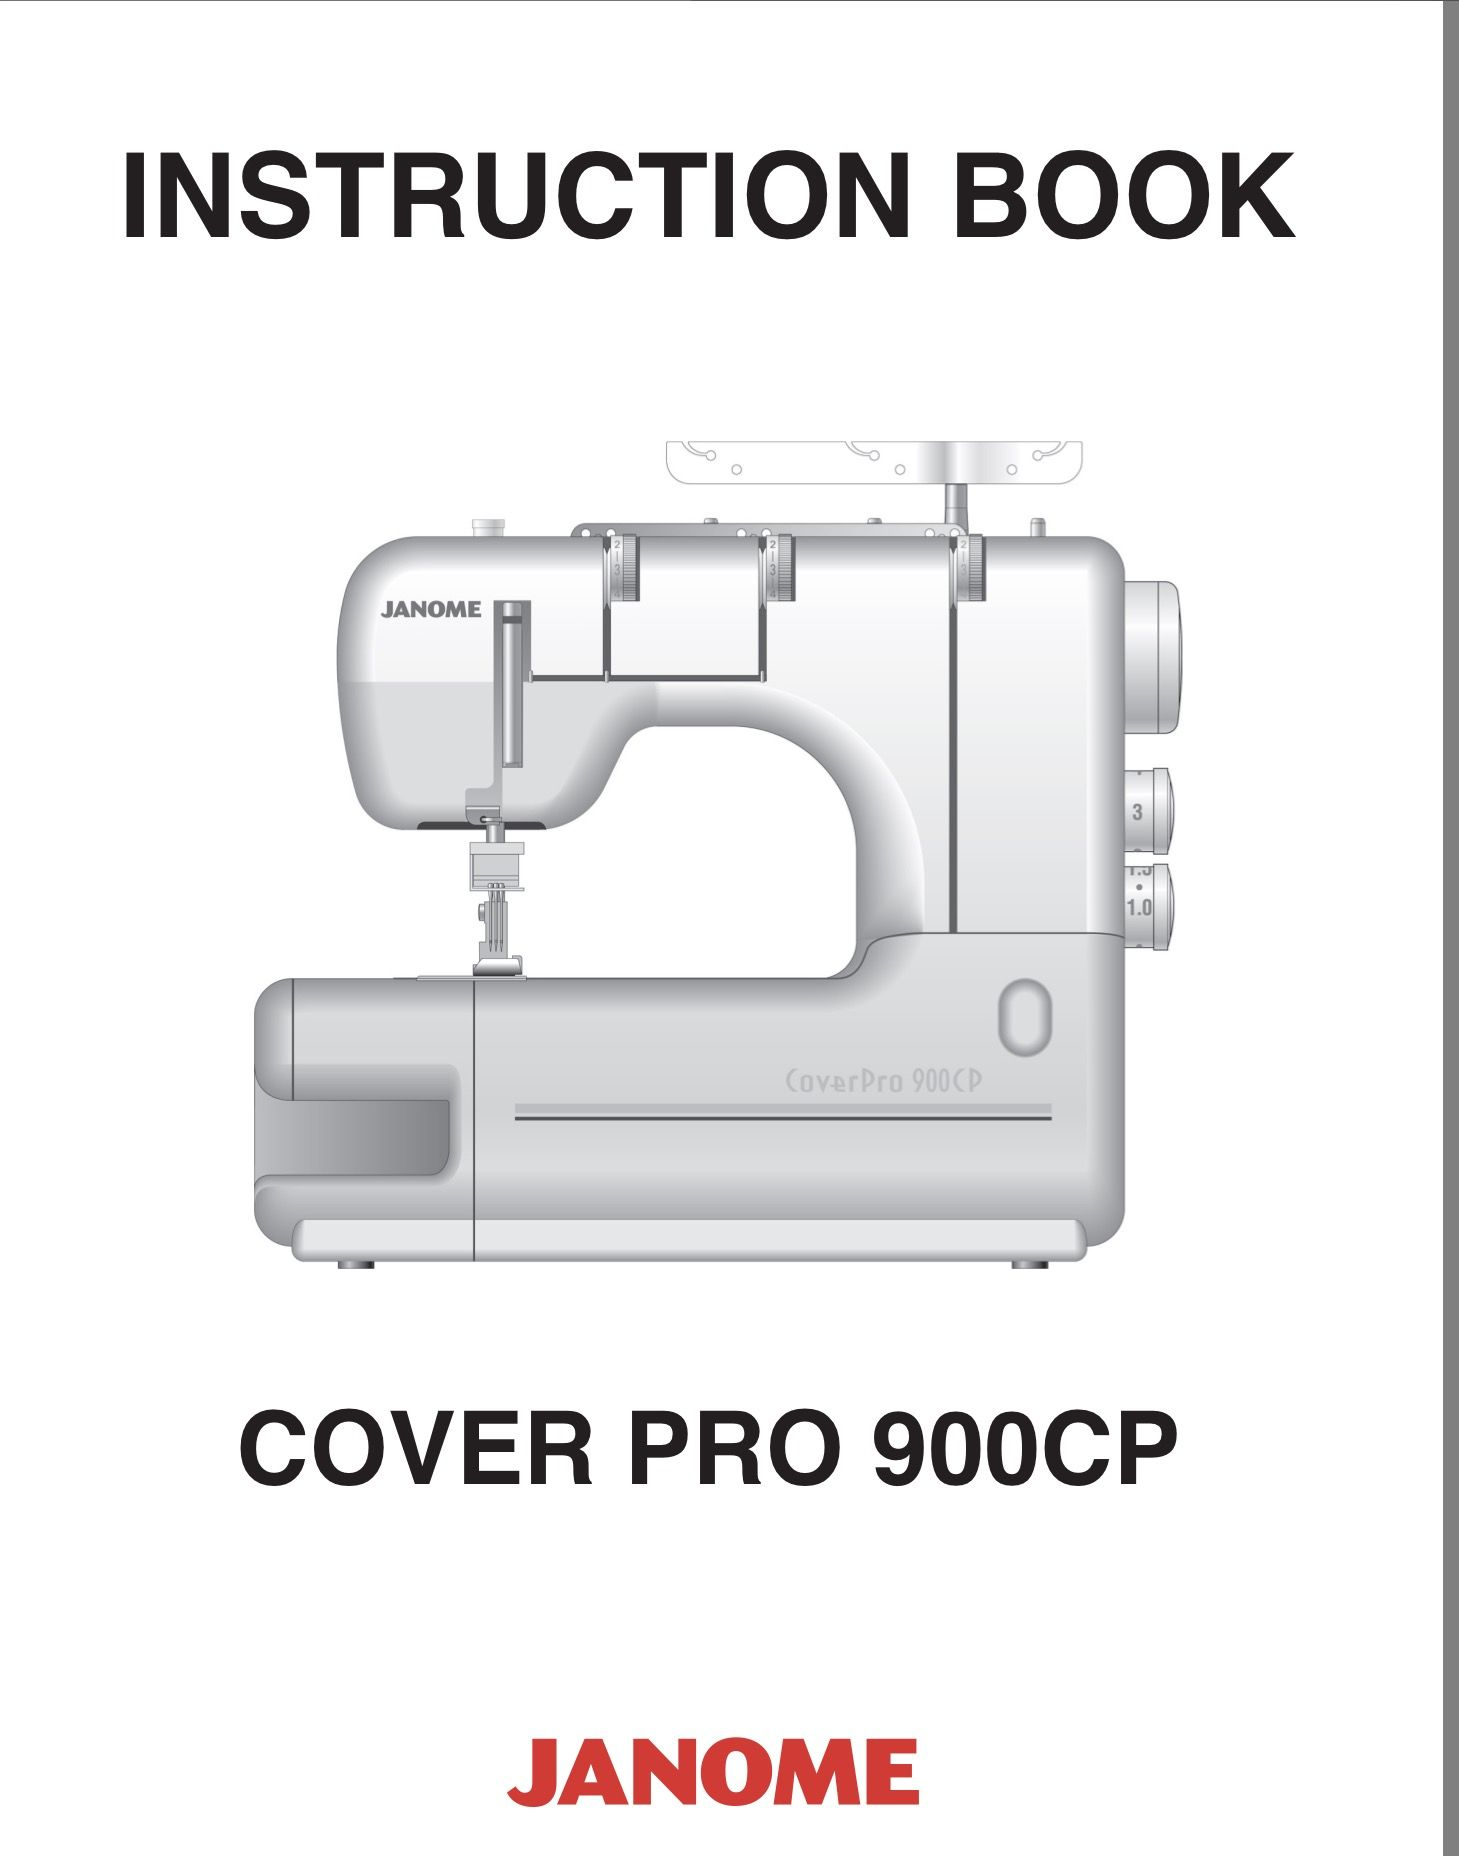 Cover Pro 900CP Manual Janome, Manual, Textbook